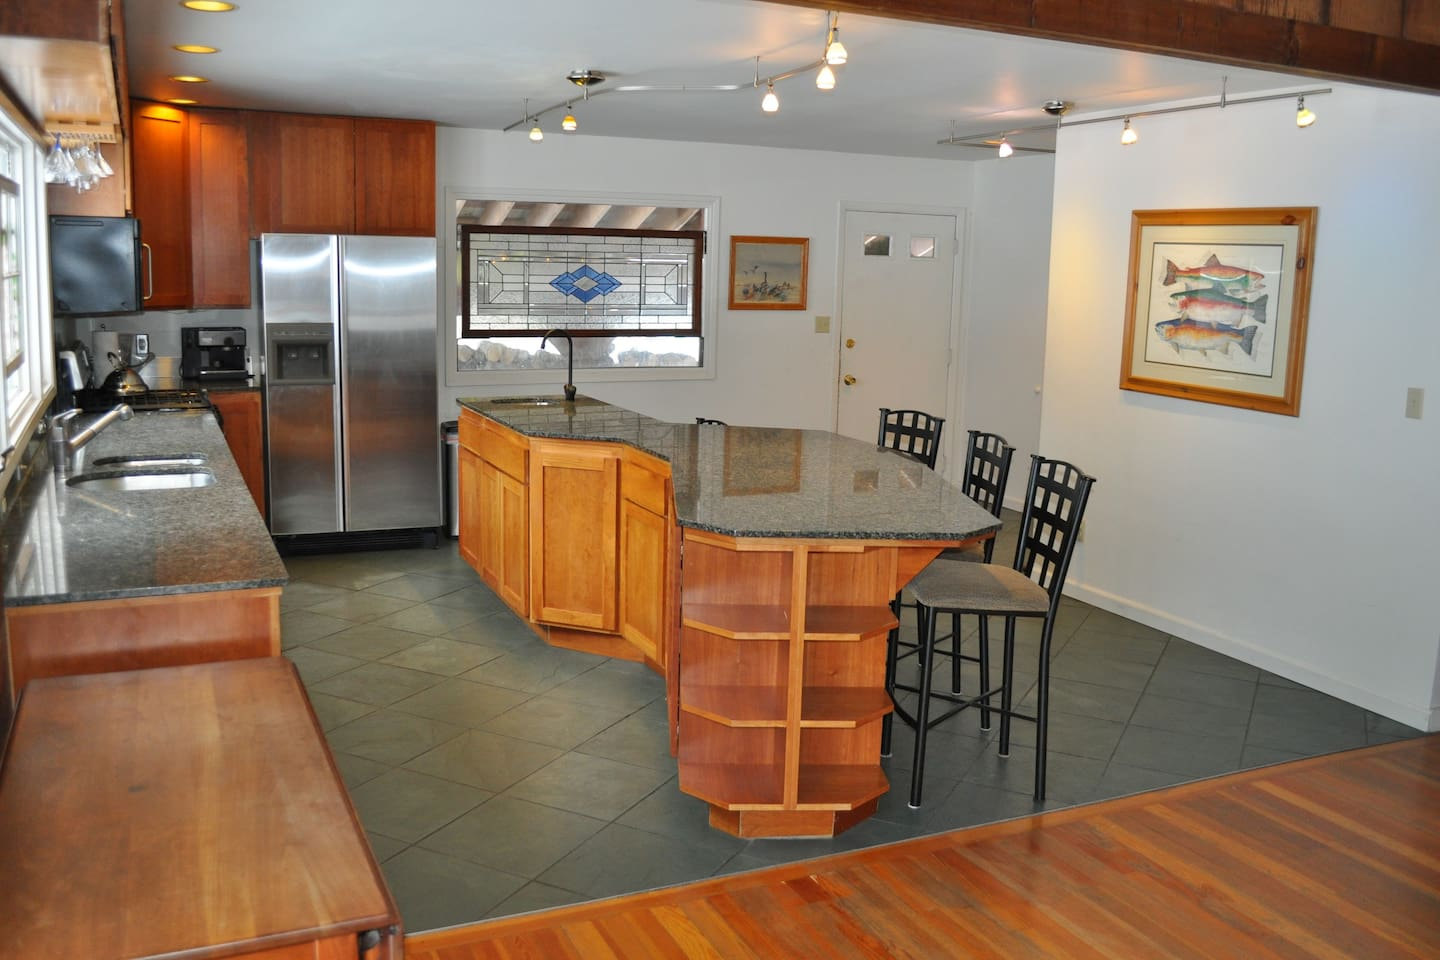 Gourmet kitchen with island seating for 8.